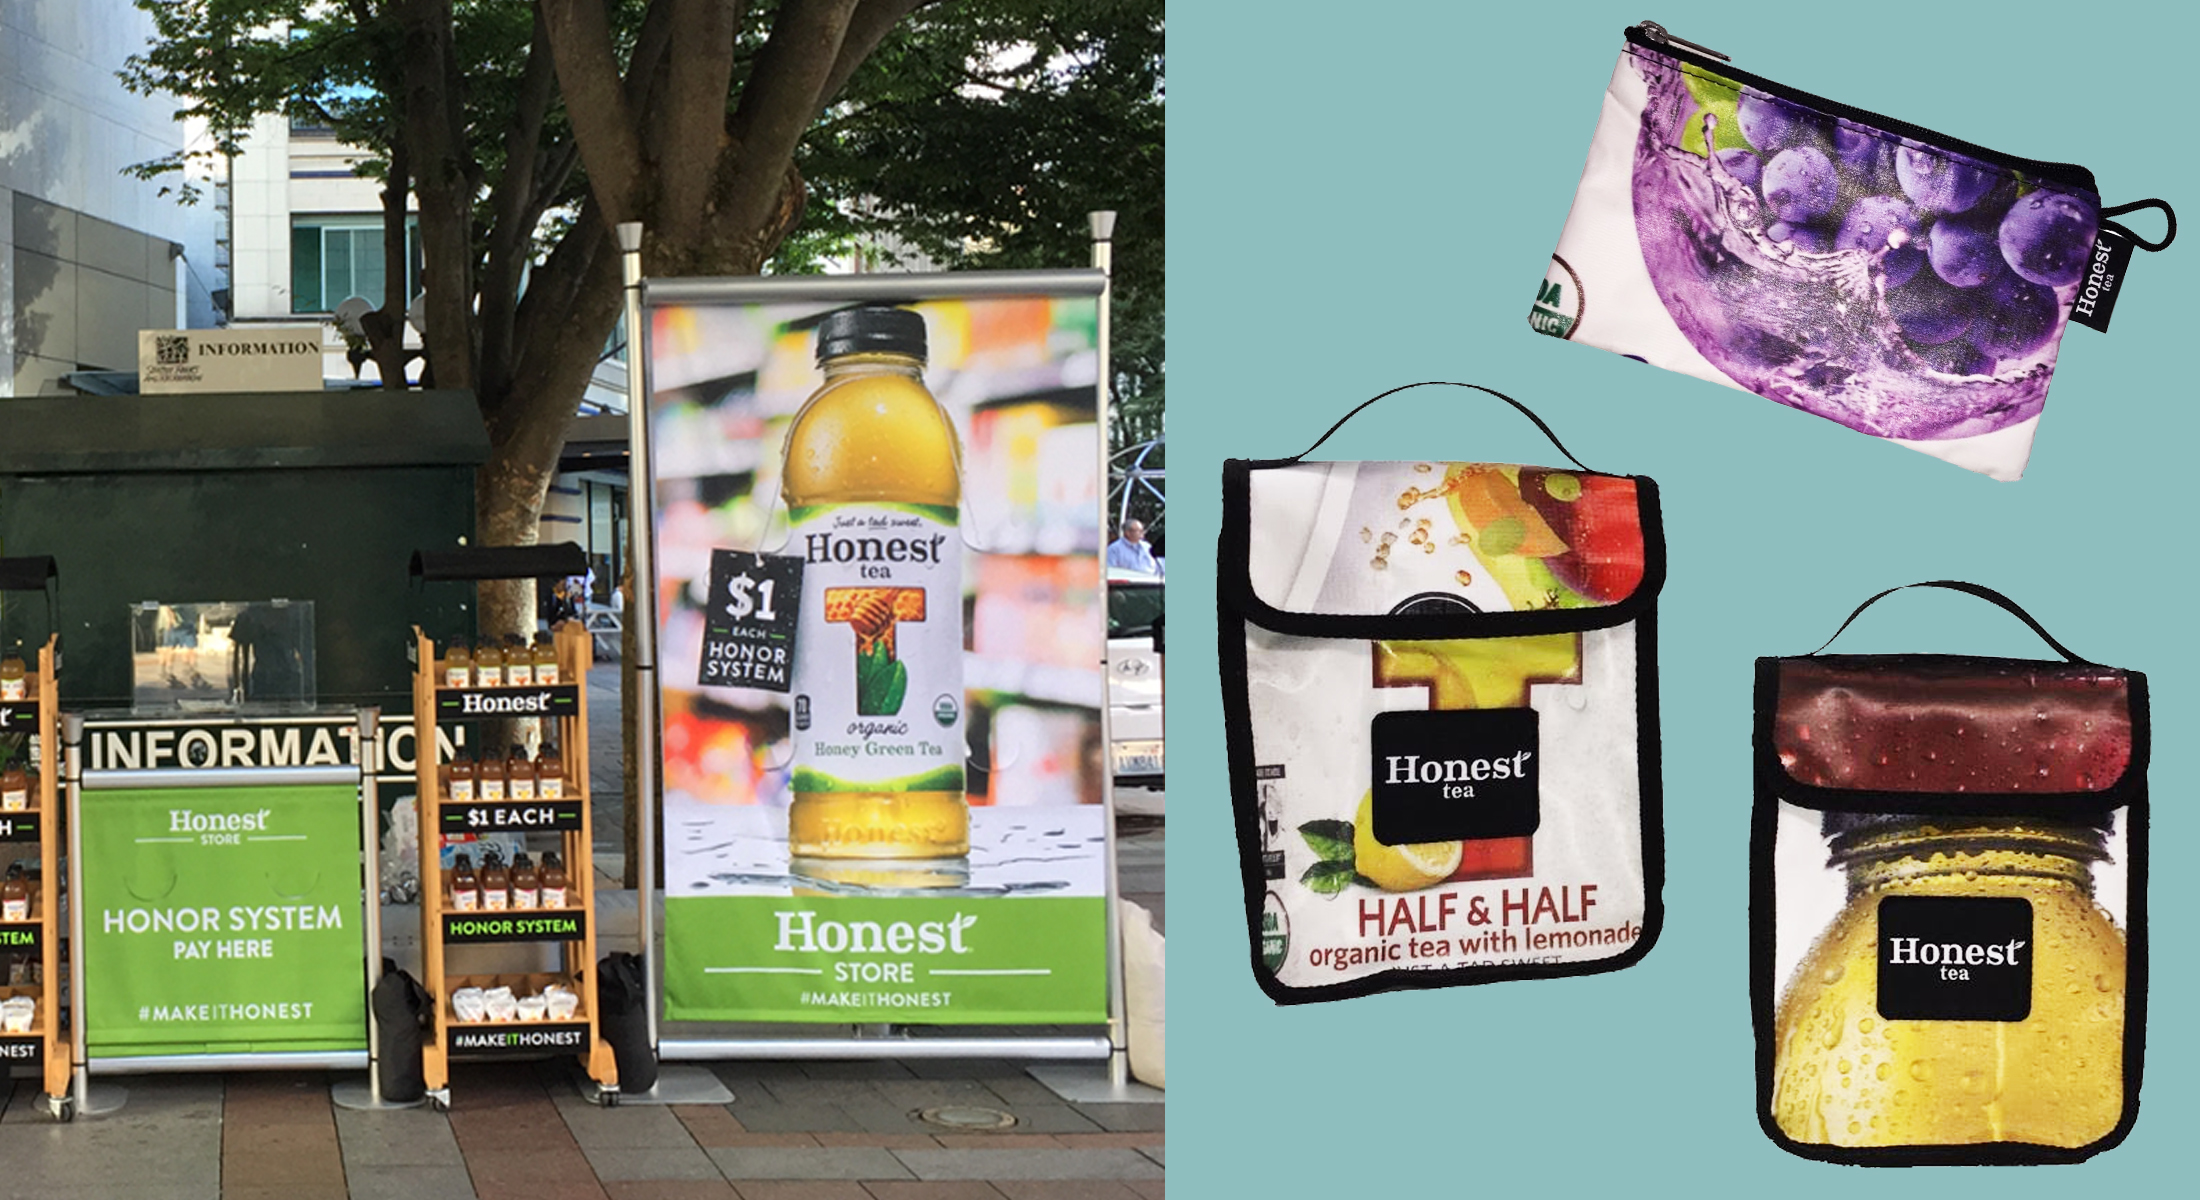 From Banners to Bags – Upcycle Your Materials Into Useful Products